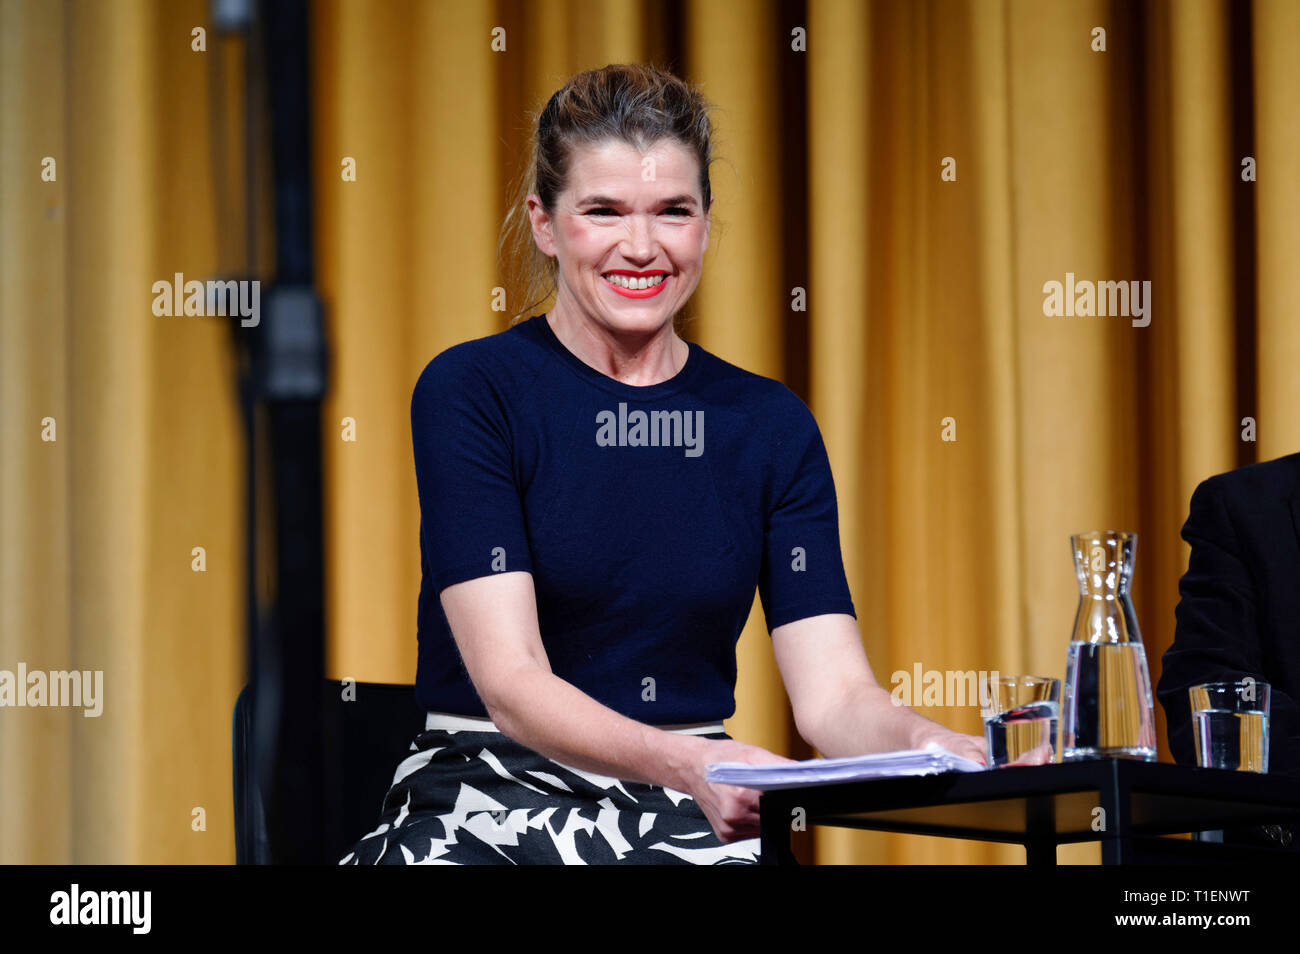 26 March 2019, North Rhine-Westphalia, Köln: The actress Anke Engelke sits on the podium at the event '. the moose bull can't roar quite as loudly as usual .' at the Literature Festival Lit. Cologne. Photo: Henning Kaiser/dpa - Stock Image